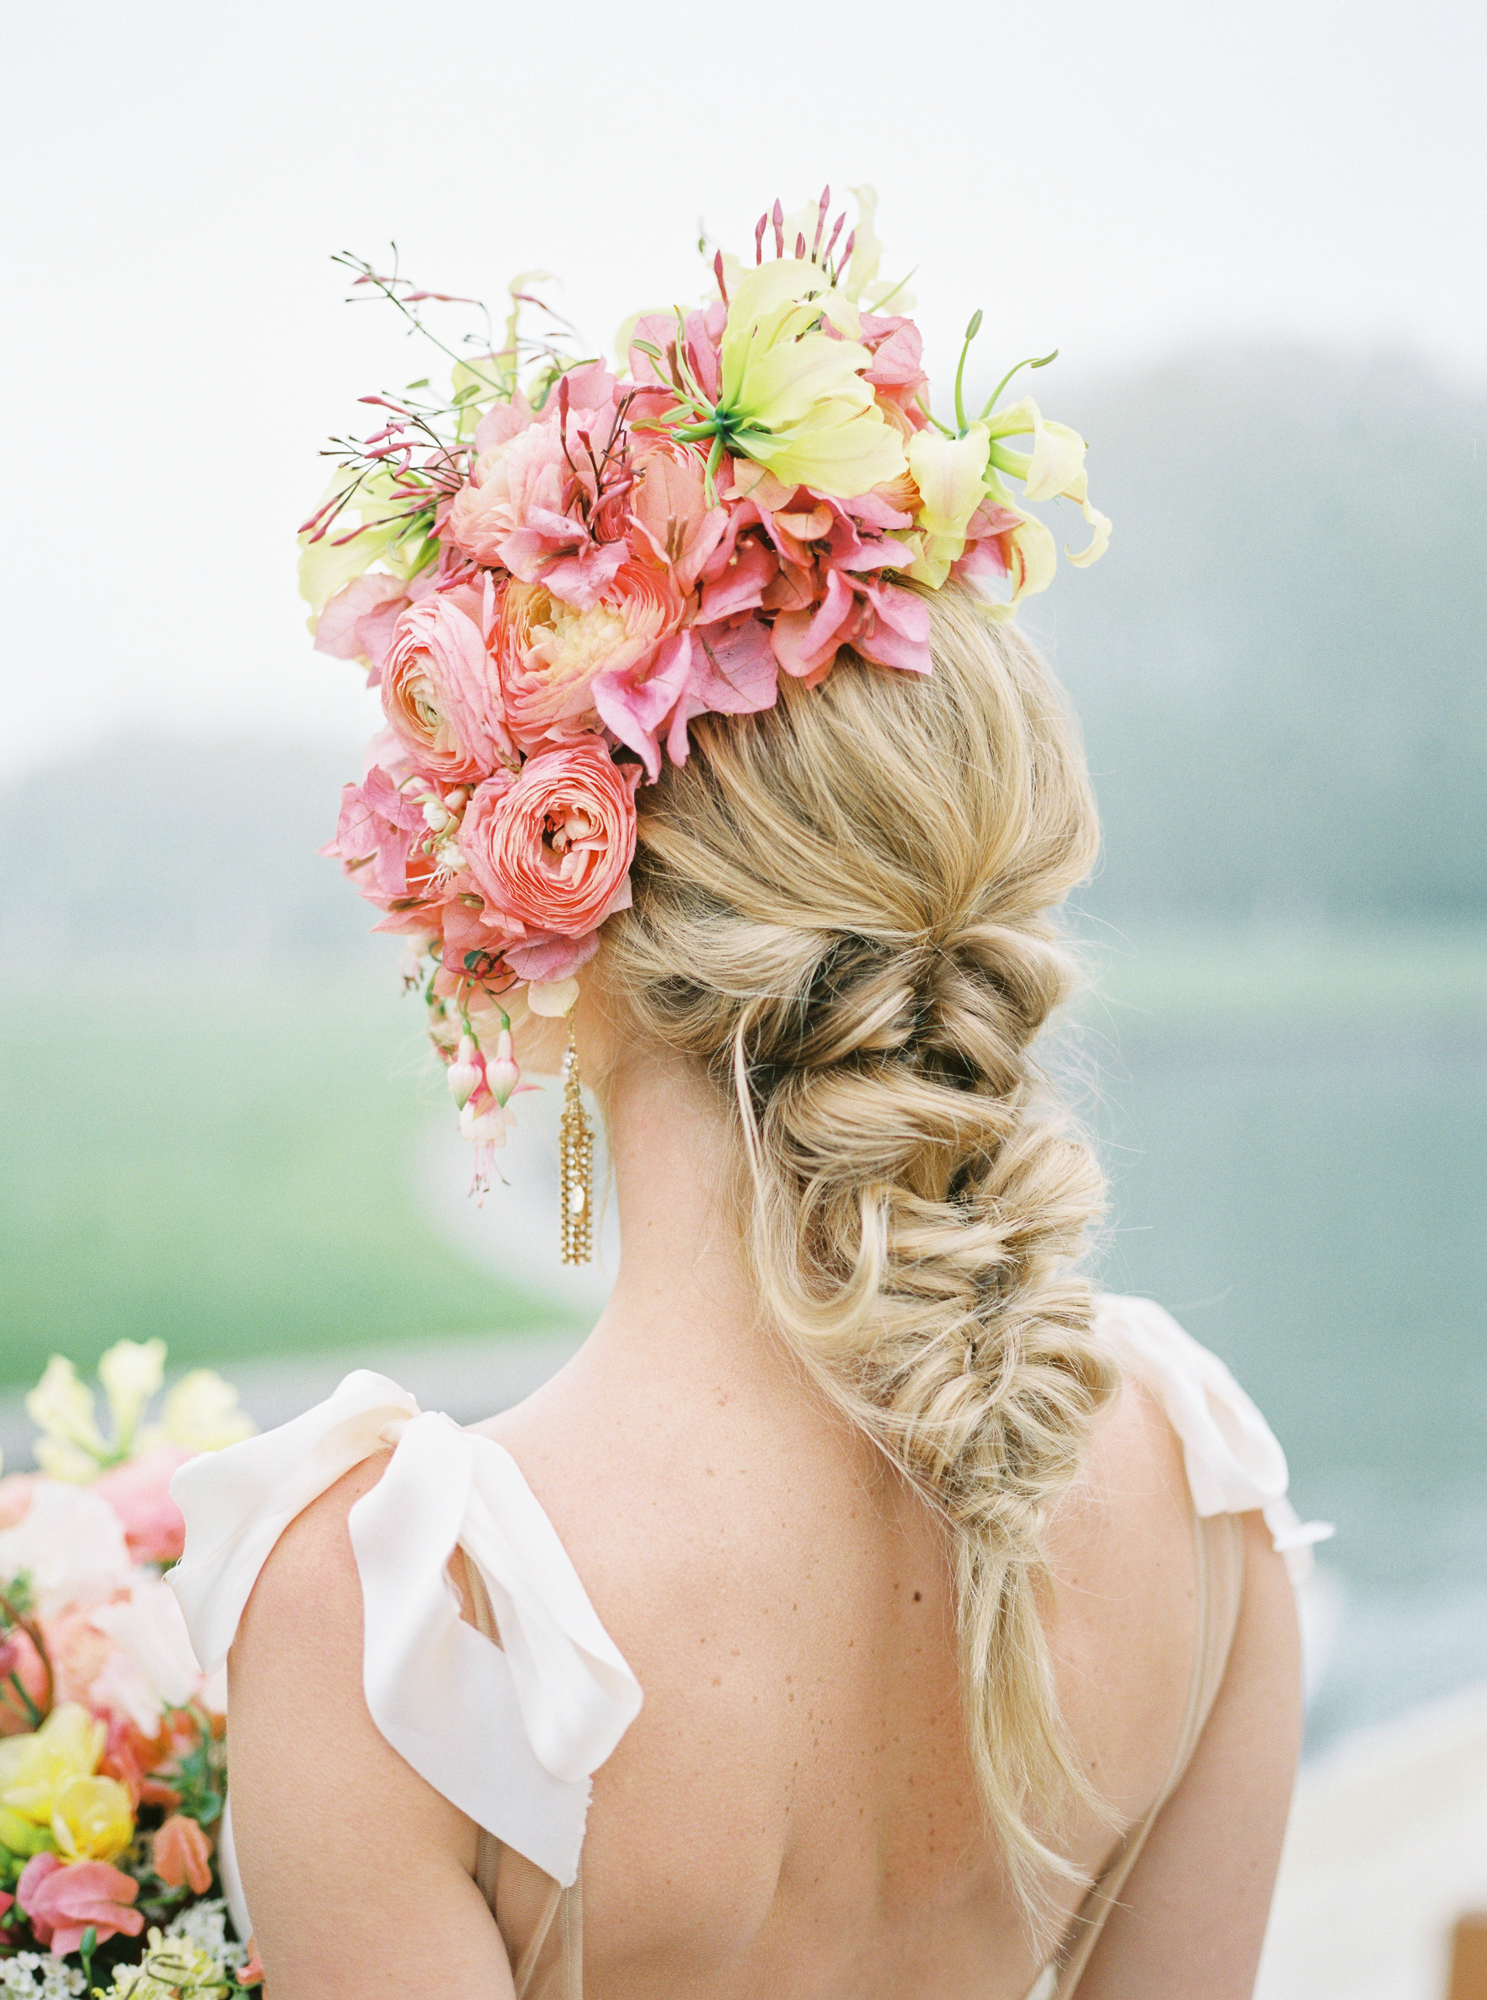 travellur_photoshoot__summer_in_versailles_wedding_flowers_bridal_luxe_shoot_floral_france_isibeal_studio_hair_trine_juel.jpg